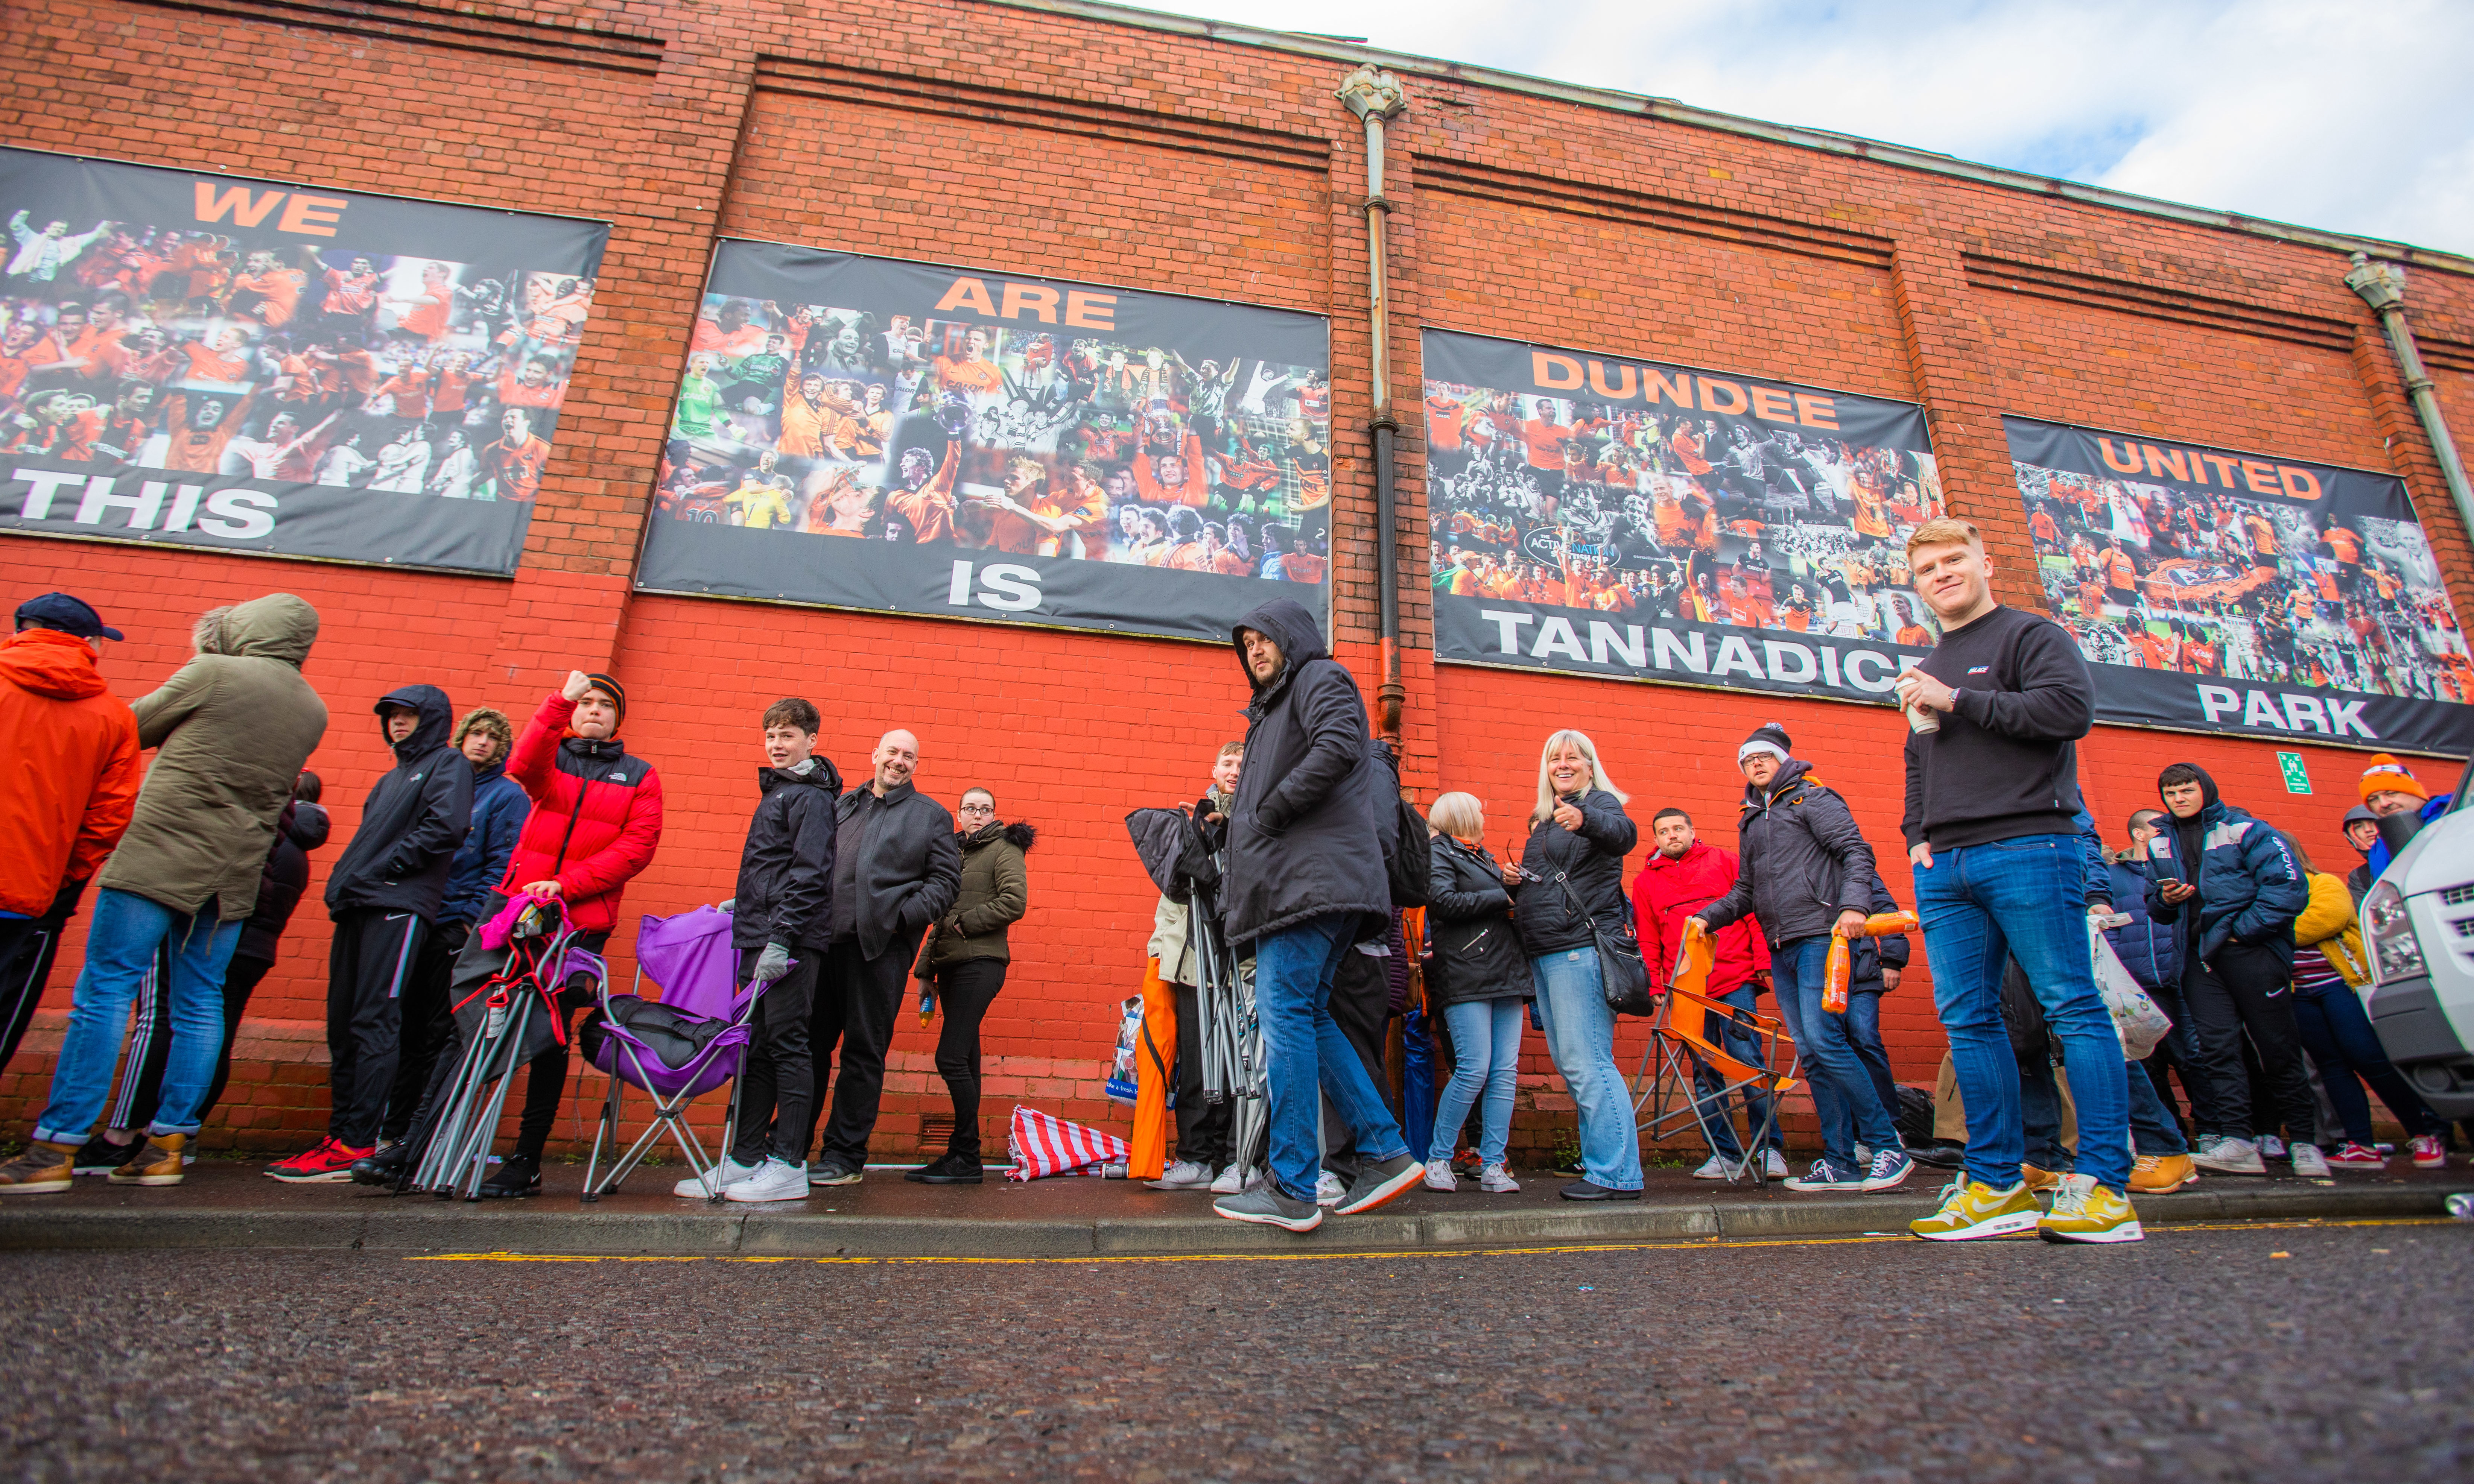 Dundee United fans queuing for play-off final tickets.